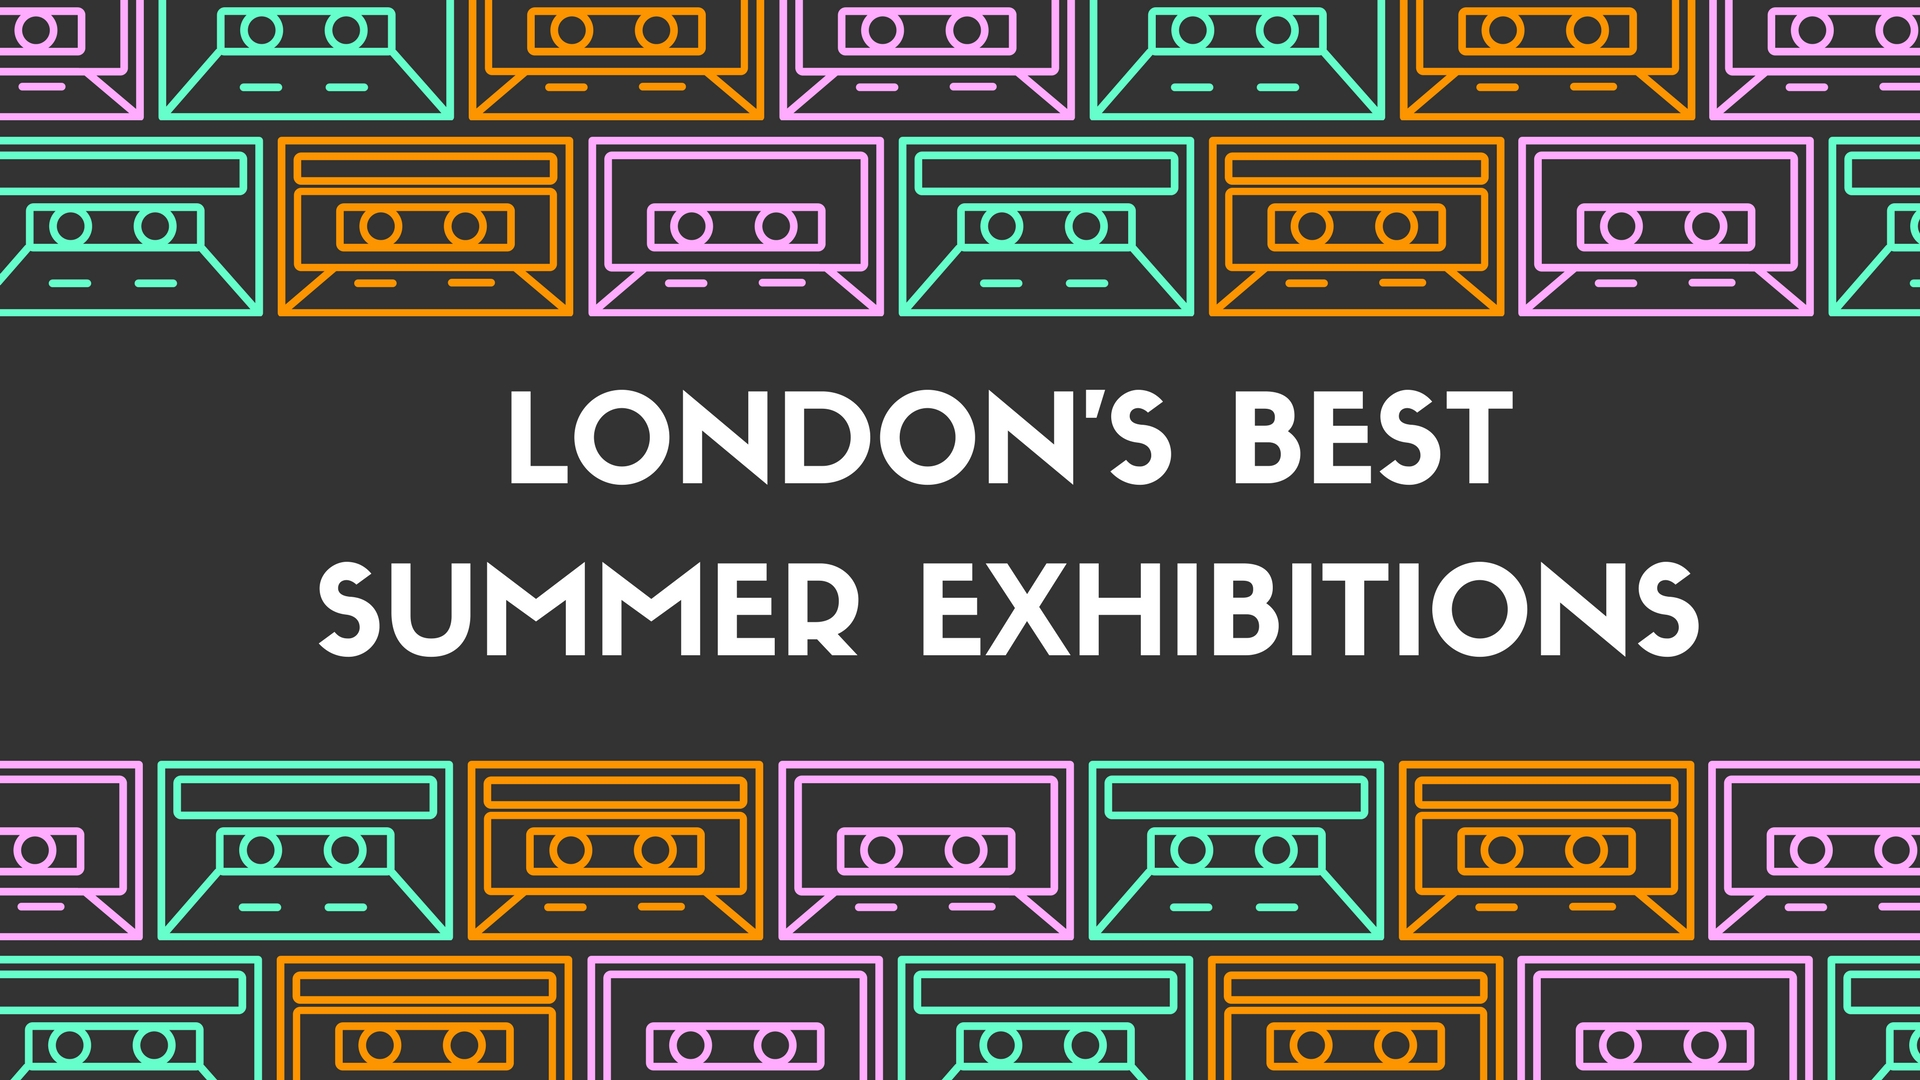 Summer Exhibition London